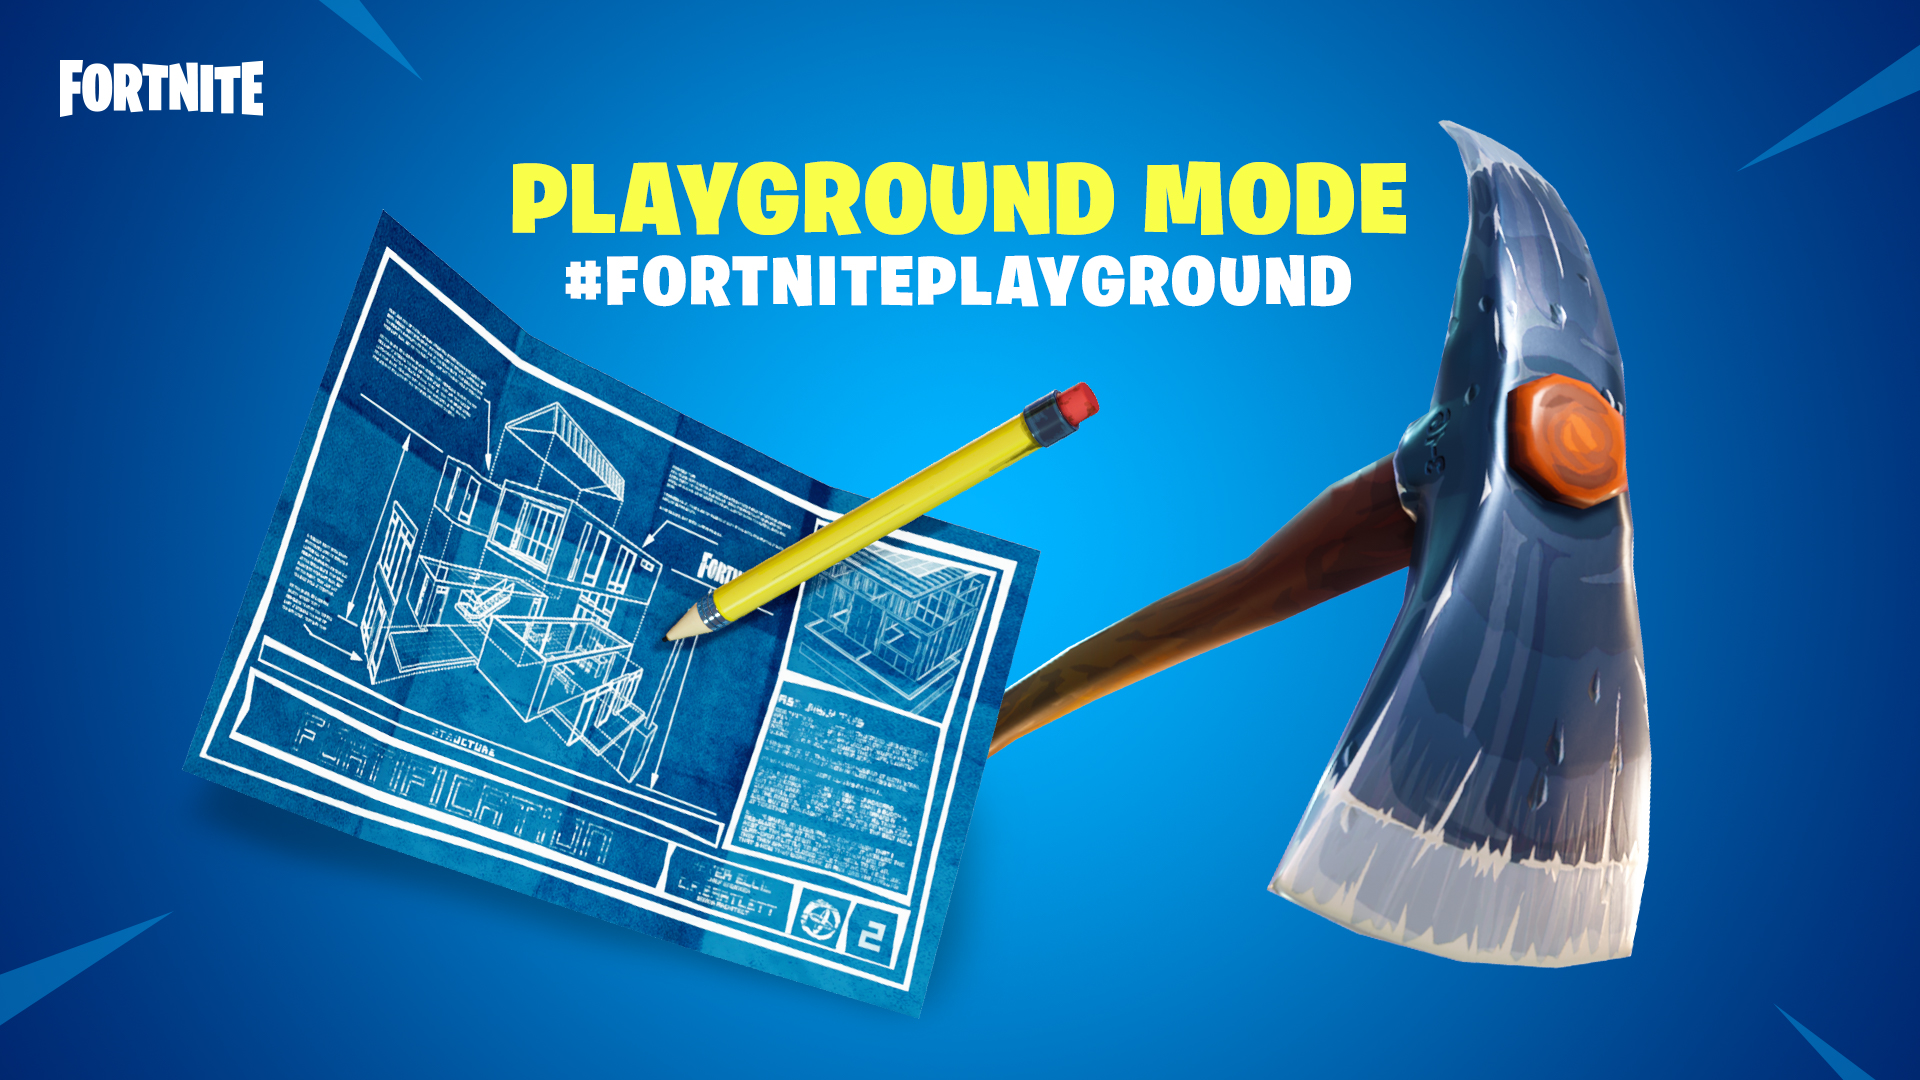 Fortnite Playground LTM guide: how it works, player count, end date